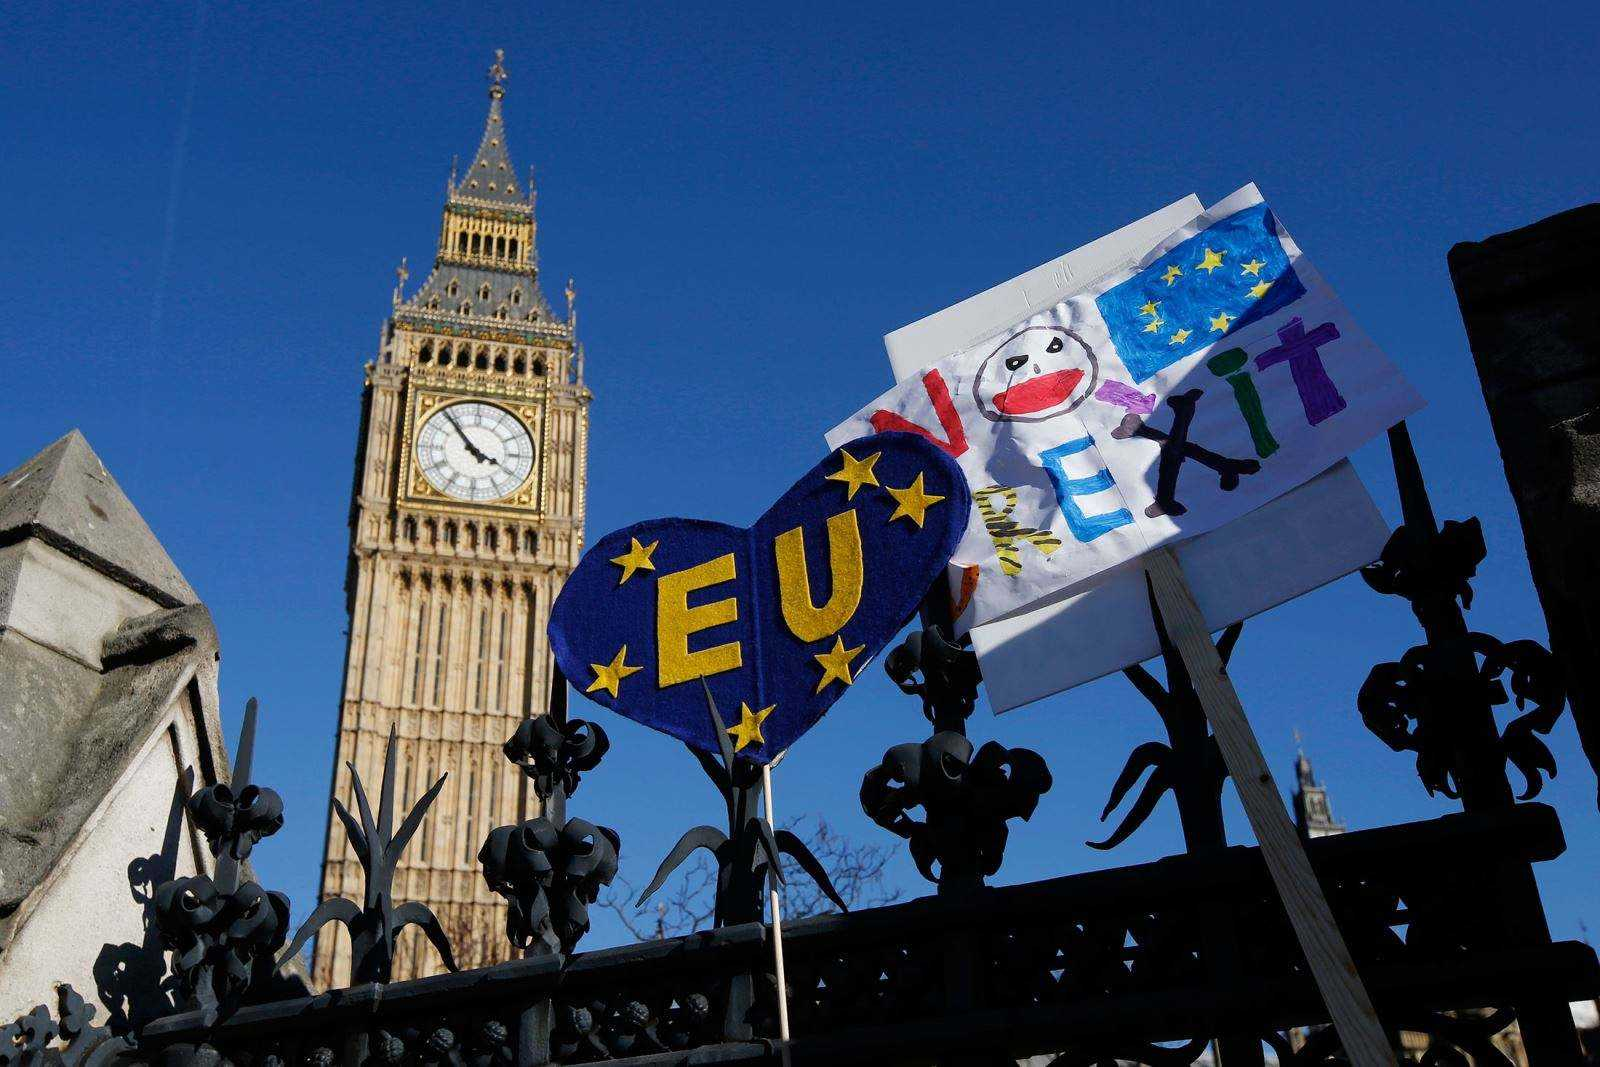 Brexit: EU citizens offered 'UK settled status' by PM May